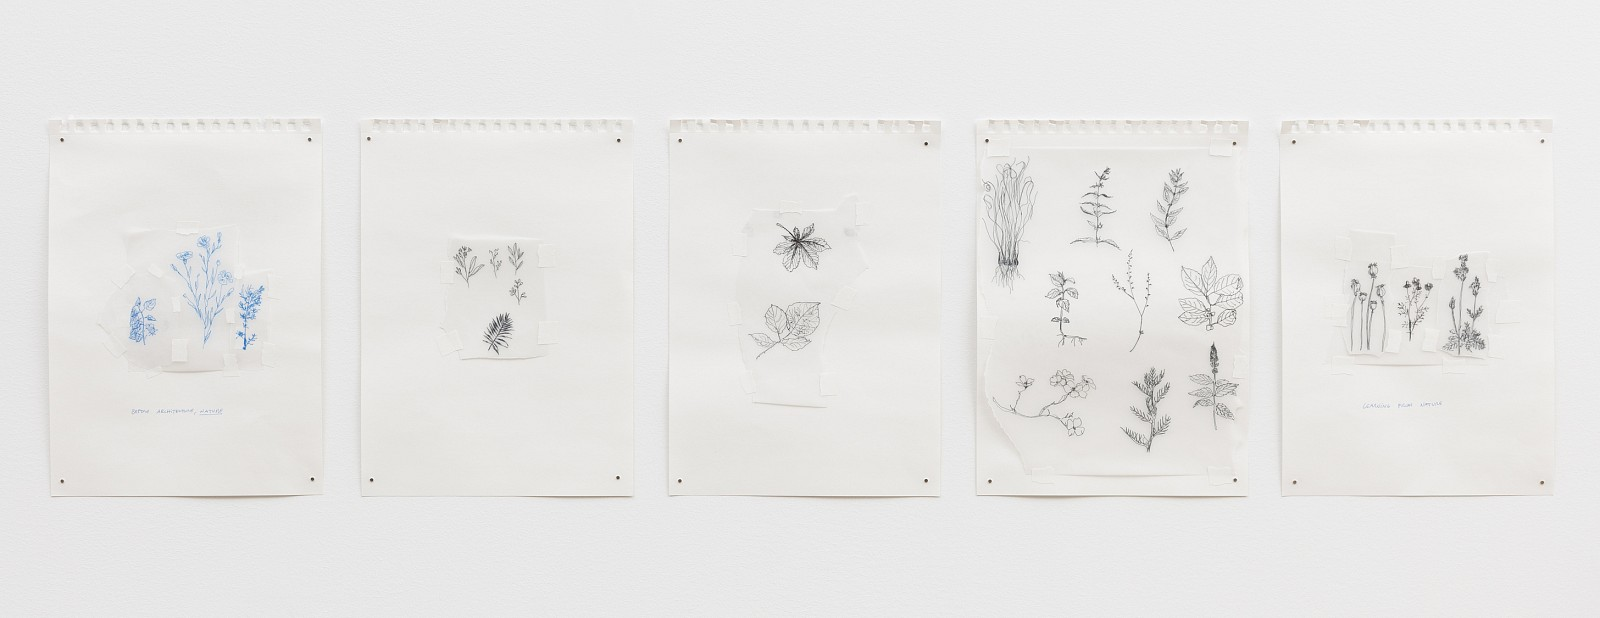 Carlos Bunga ,   Thoughts Aloud (Nature)  ,  2017     pen and painter's tape on tracing paper in 5 parts      